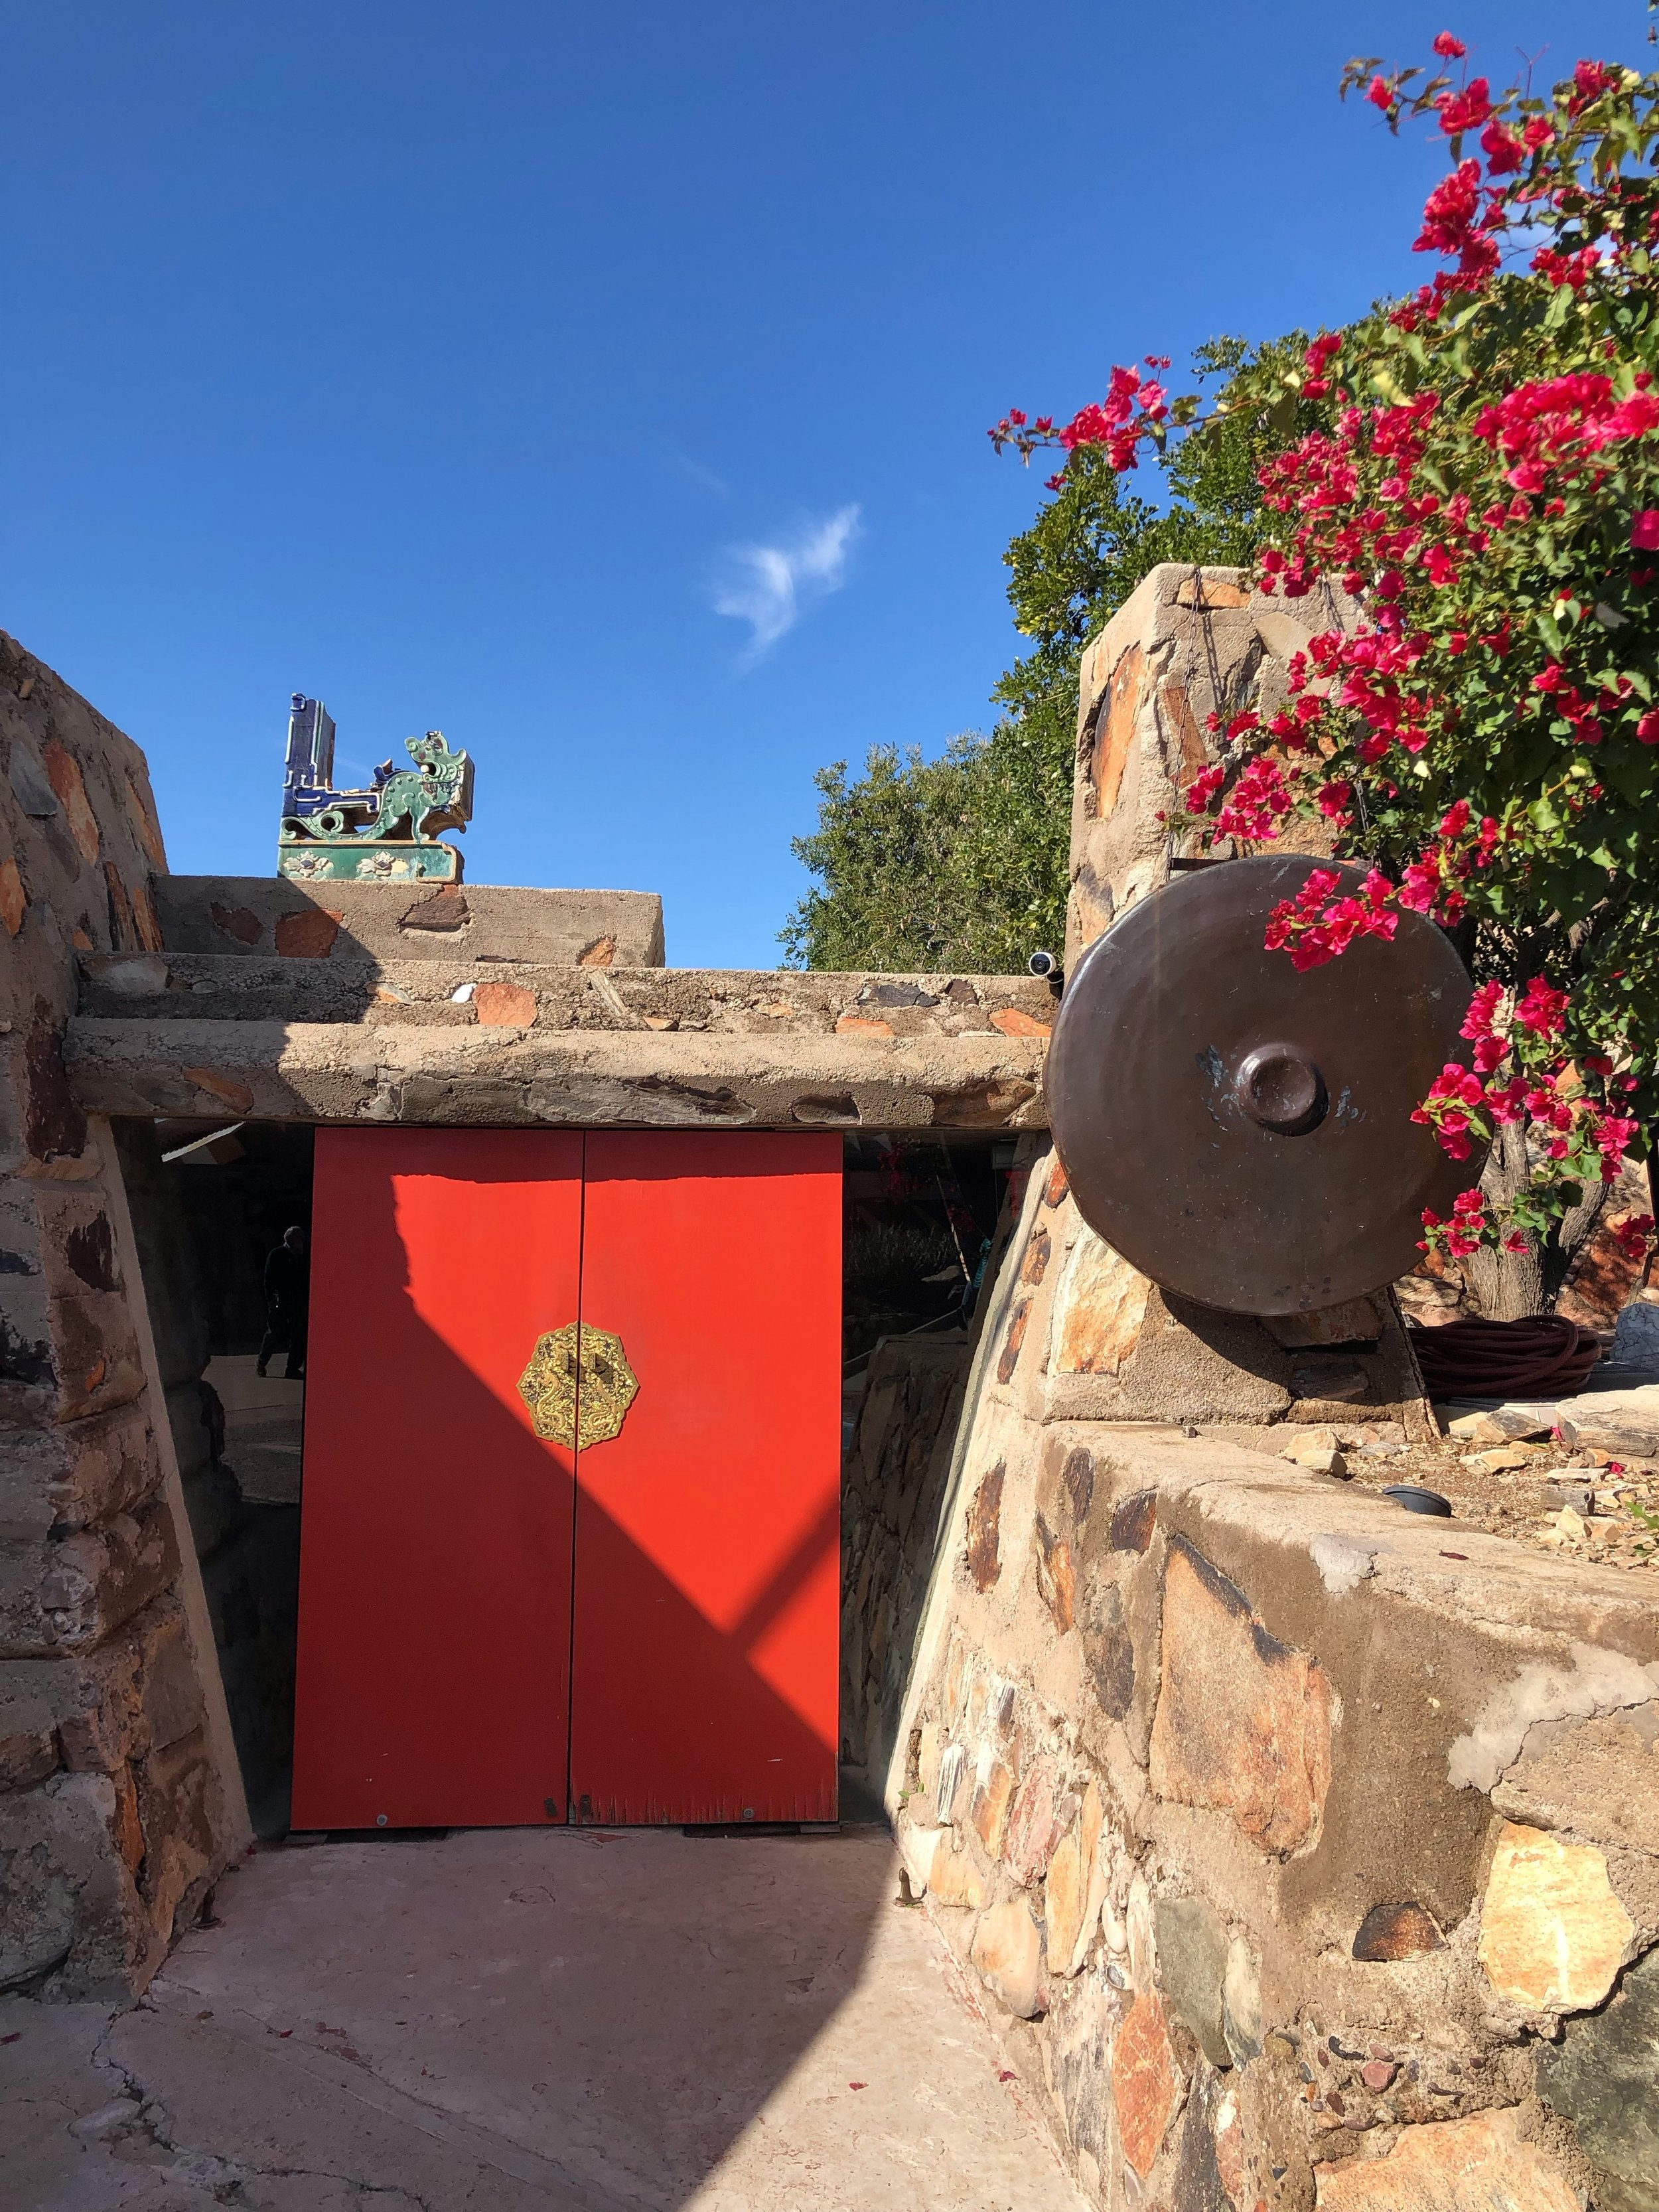 Frank Lloyd Wright and Taliesen West in Scottsdale, Arizona